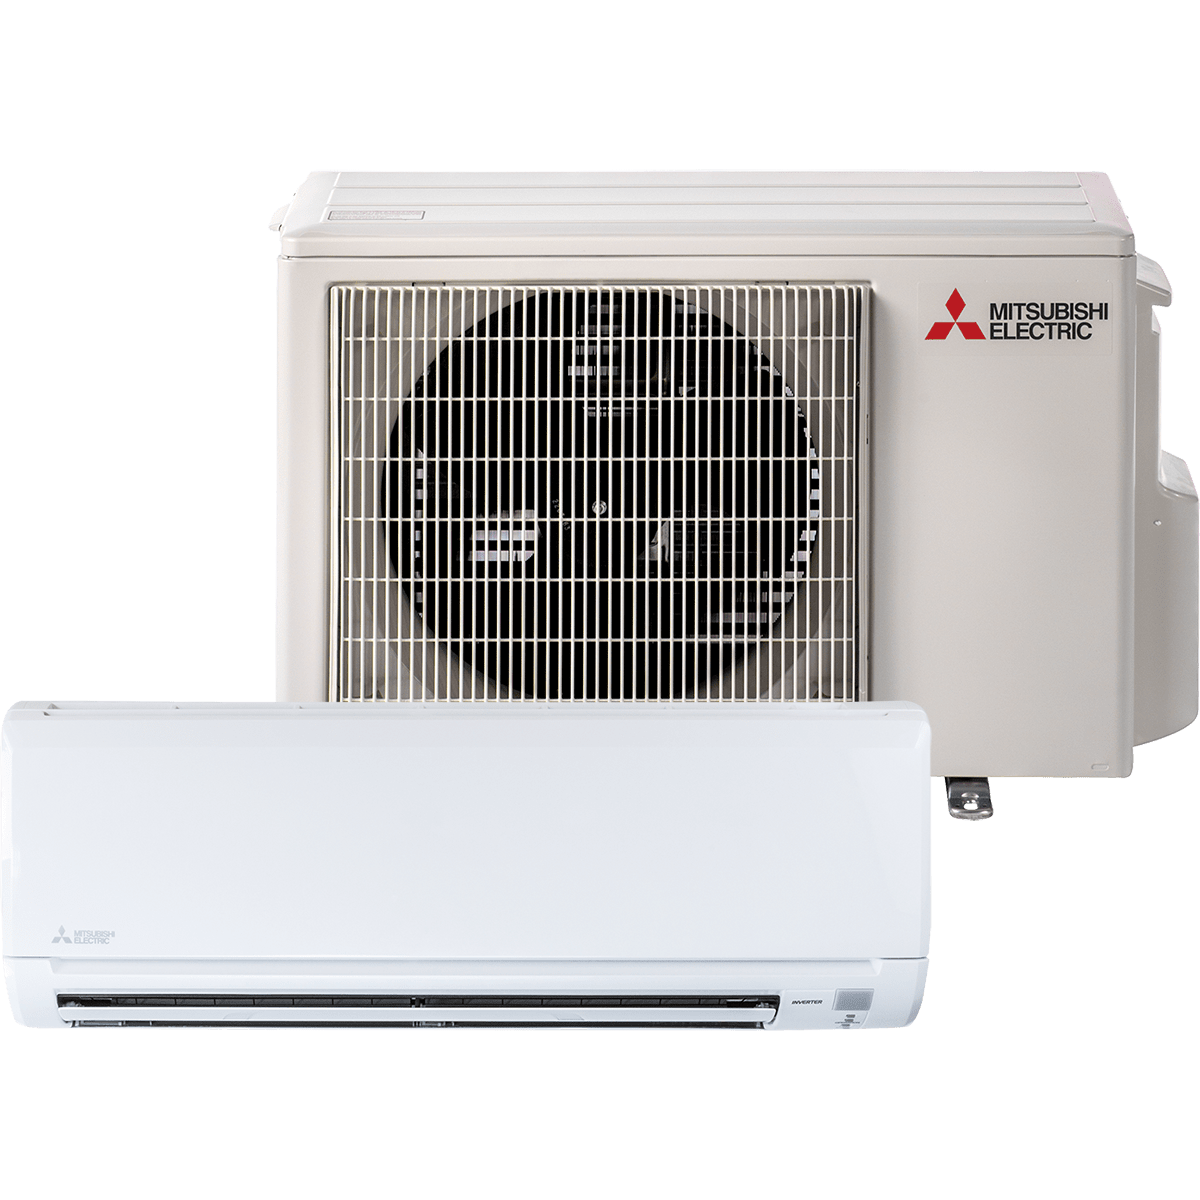 Mitsubishi Mz Hm15na Mini Split Heat Pump Sylvane